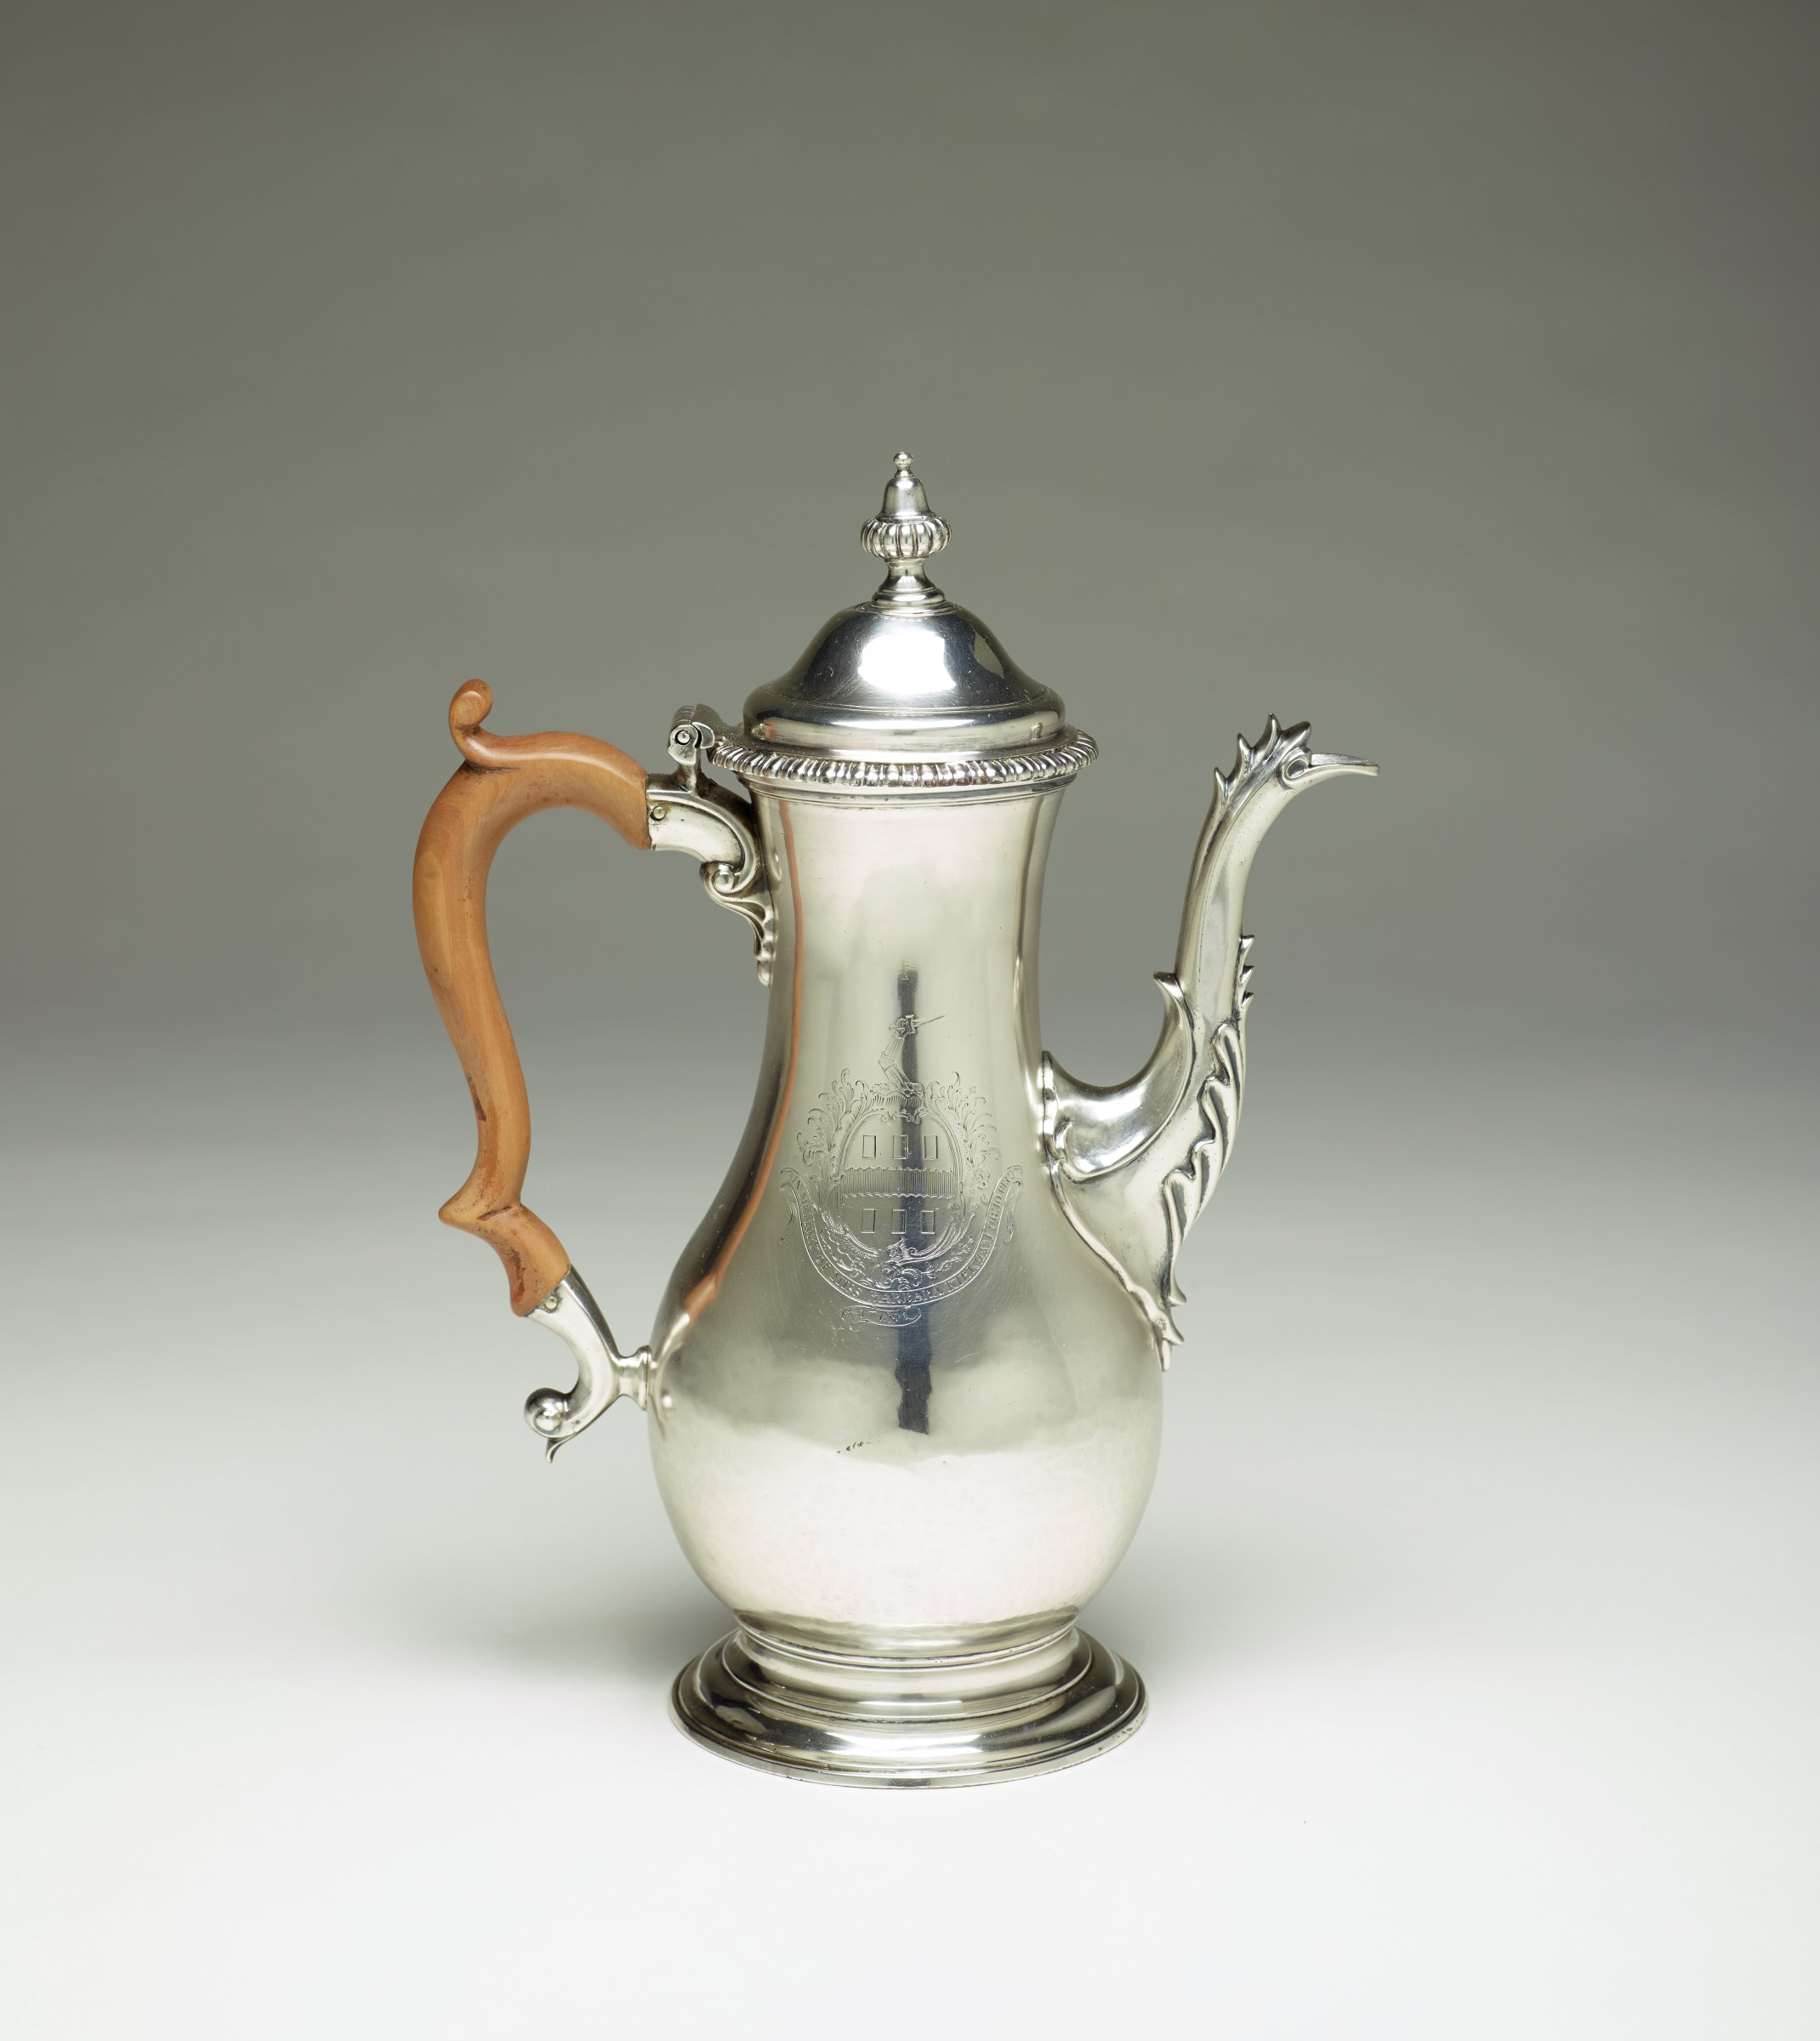 Tall silver coffeepot of elongated pear-shaped form on round, stepped foot, the elegantly curved spout decorated with stylized foliage, the wooden hand two modified C-scrolls with a tightly scrolled thumb rest, the hinged, domed lid with a band of gadrooning at the edge and with a fluted cap-shaped finial, one side of the main body engraved with a fictitious coat of arms above a banner that reads, IN MEMORY OF MISS BARBARA KIRKHAM OB: 10 DEC: 1769